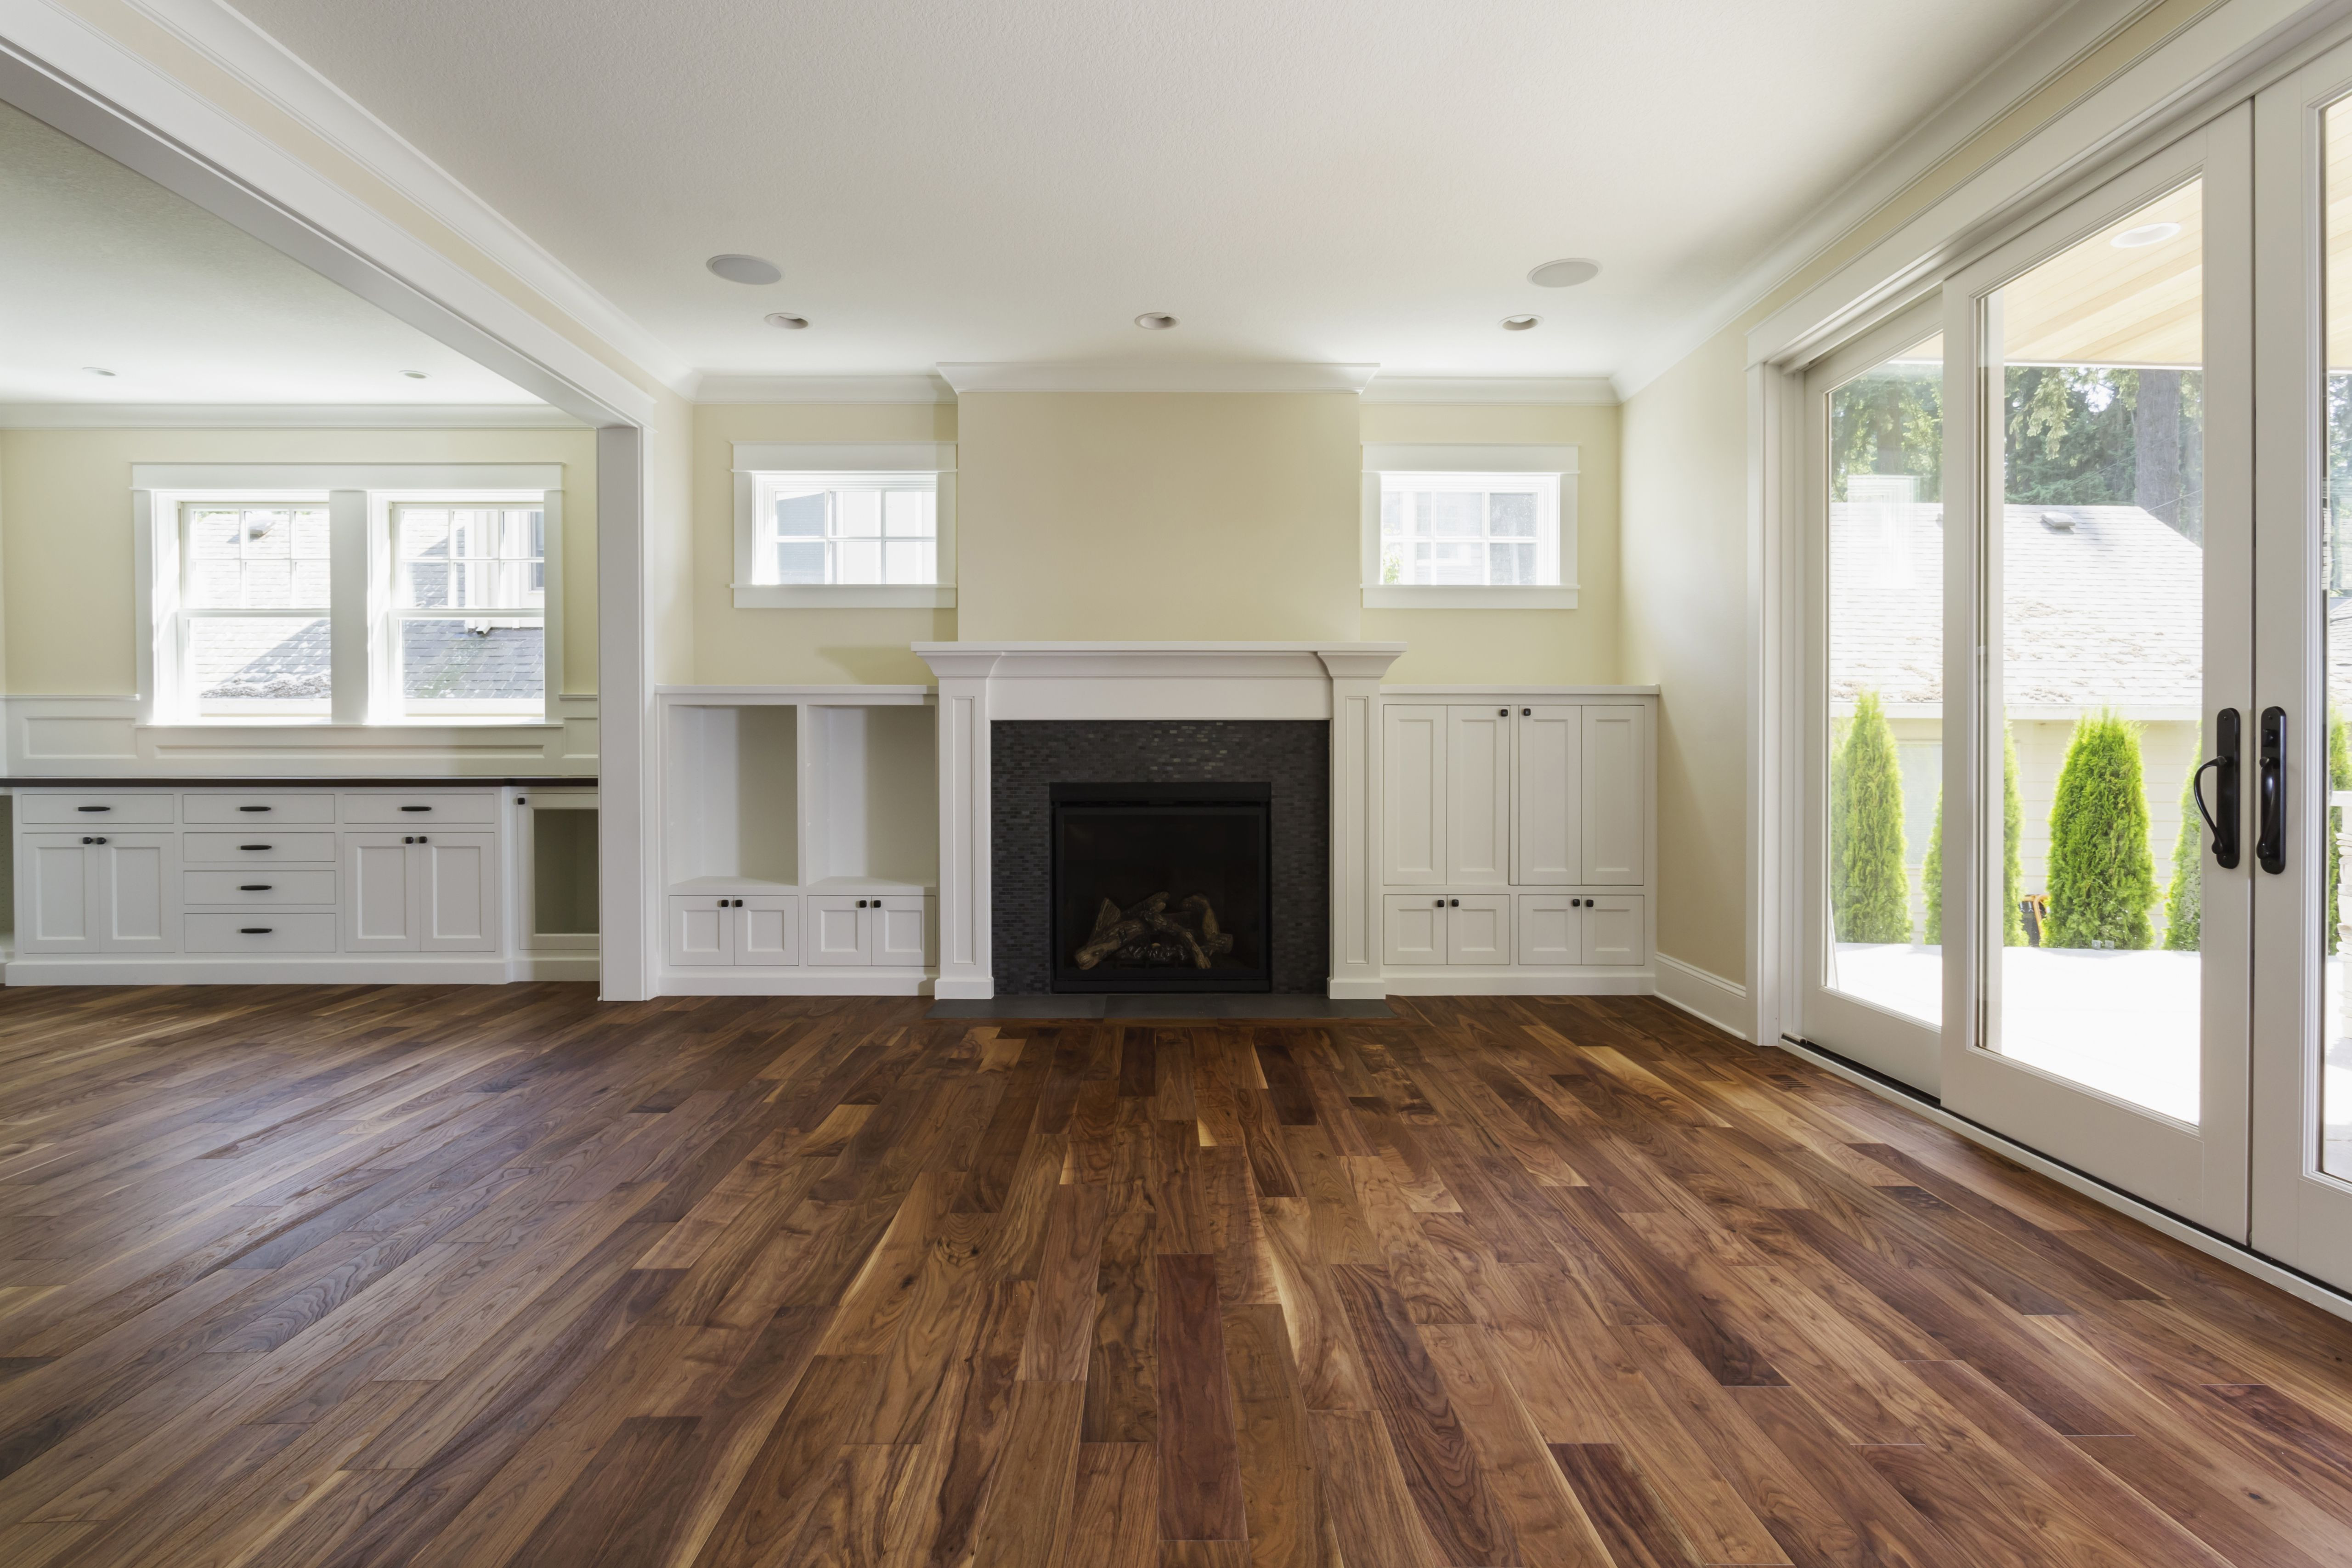 b f hardwood flooring of the pros and cons of prefinished hardwood flooring for fireplace and built in shelves in living room 57bef8e33df78cc16e